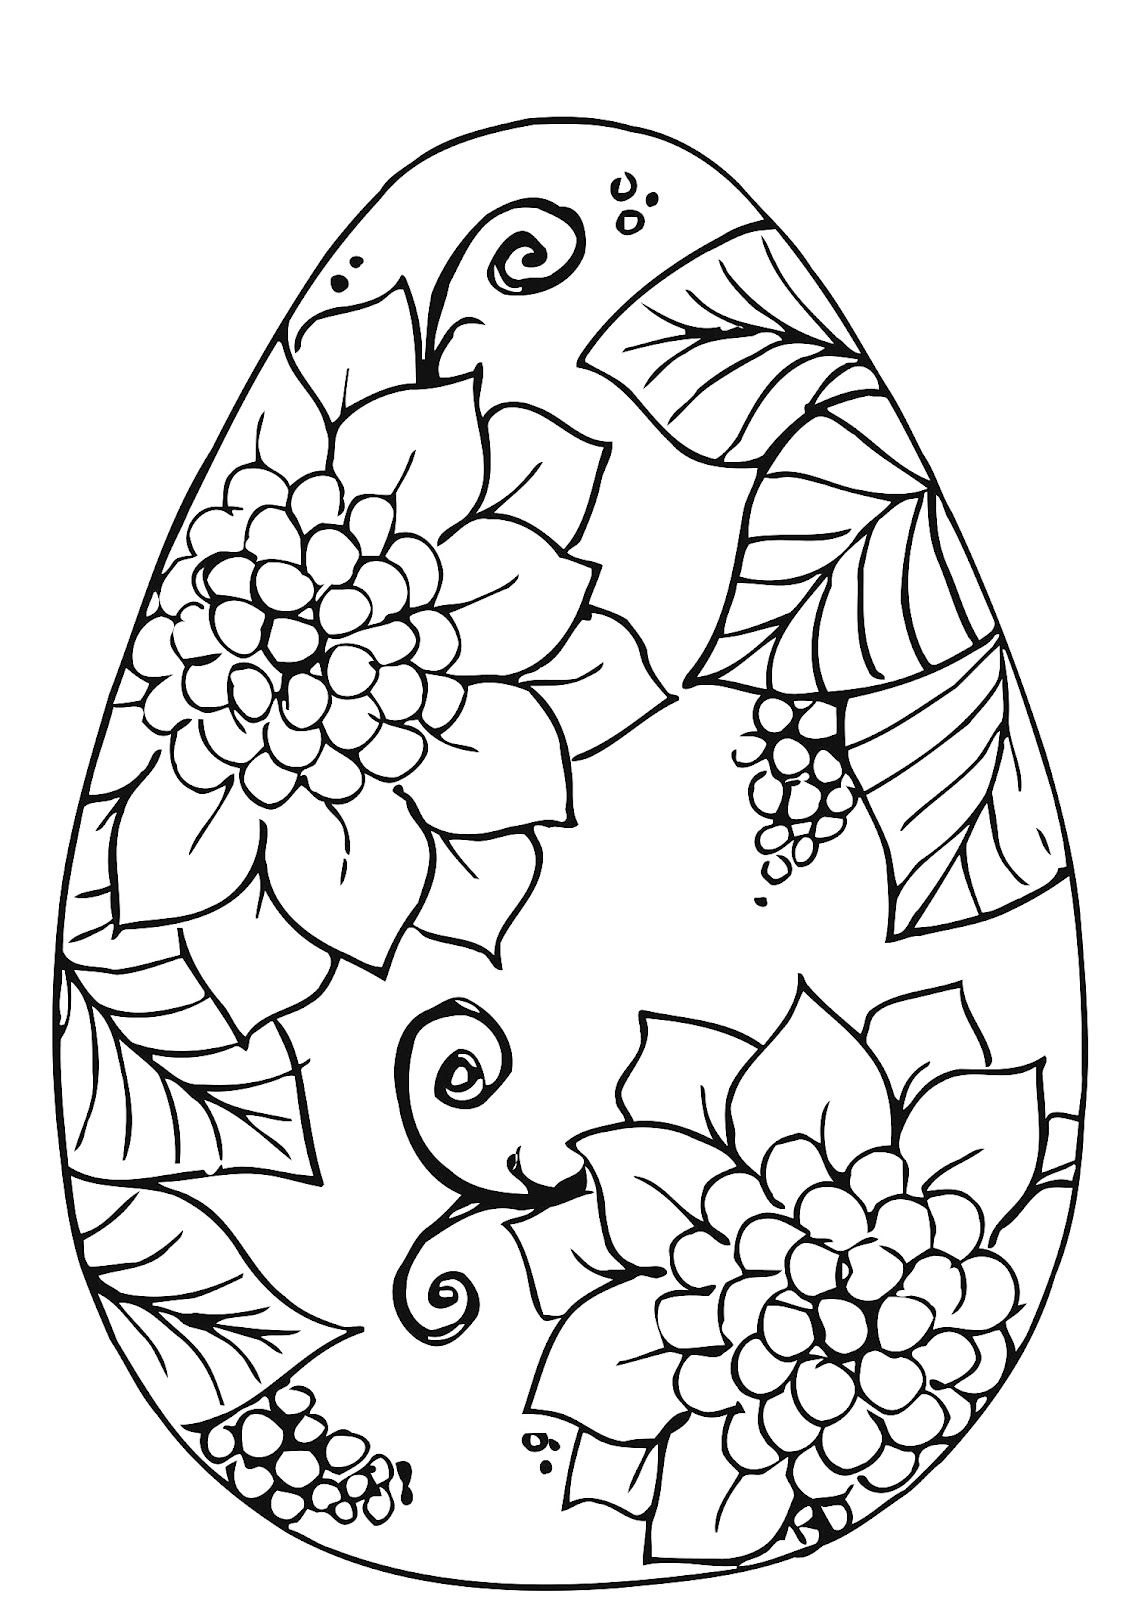 Mandala coloring pages easter - B D Designs Free Coloring Page Easter Kleurplaat Pasen